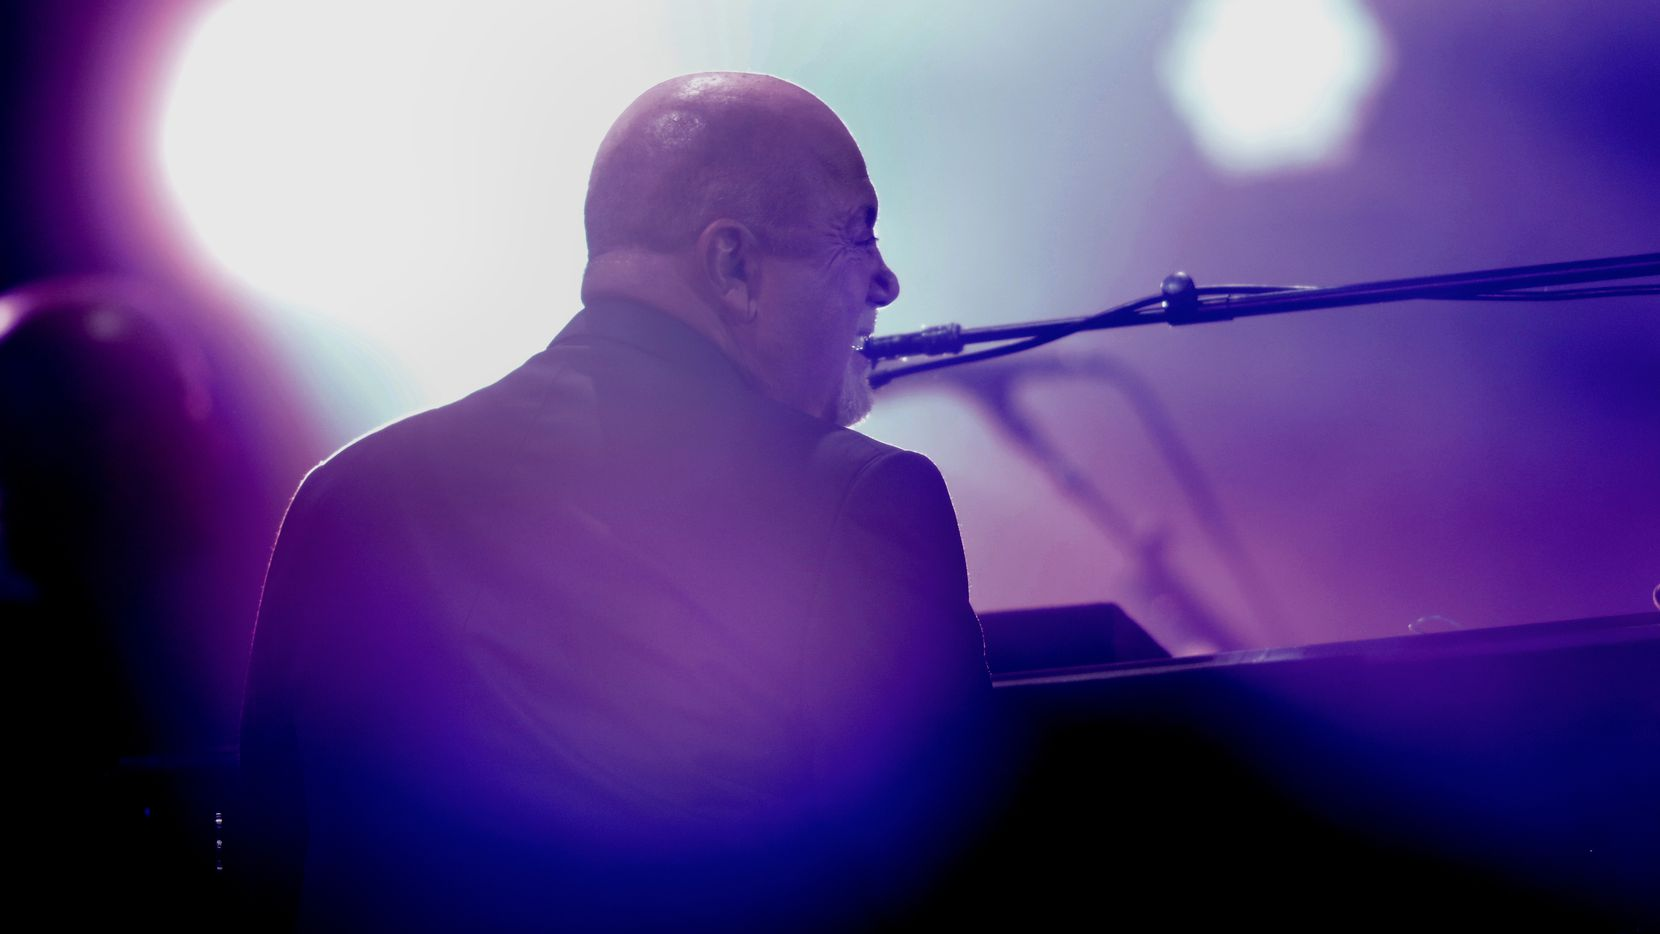 Billy Joel performed to the delight of fans at Globe Life Park in Arlington on Oct. 12, 2019.